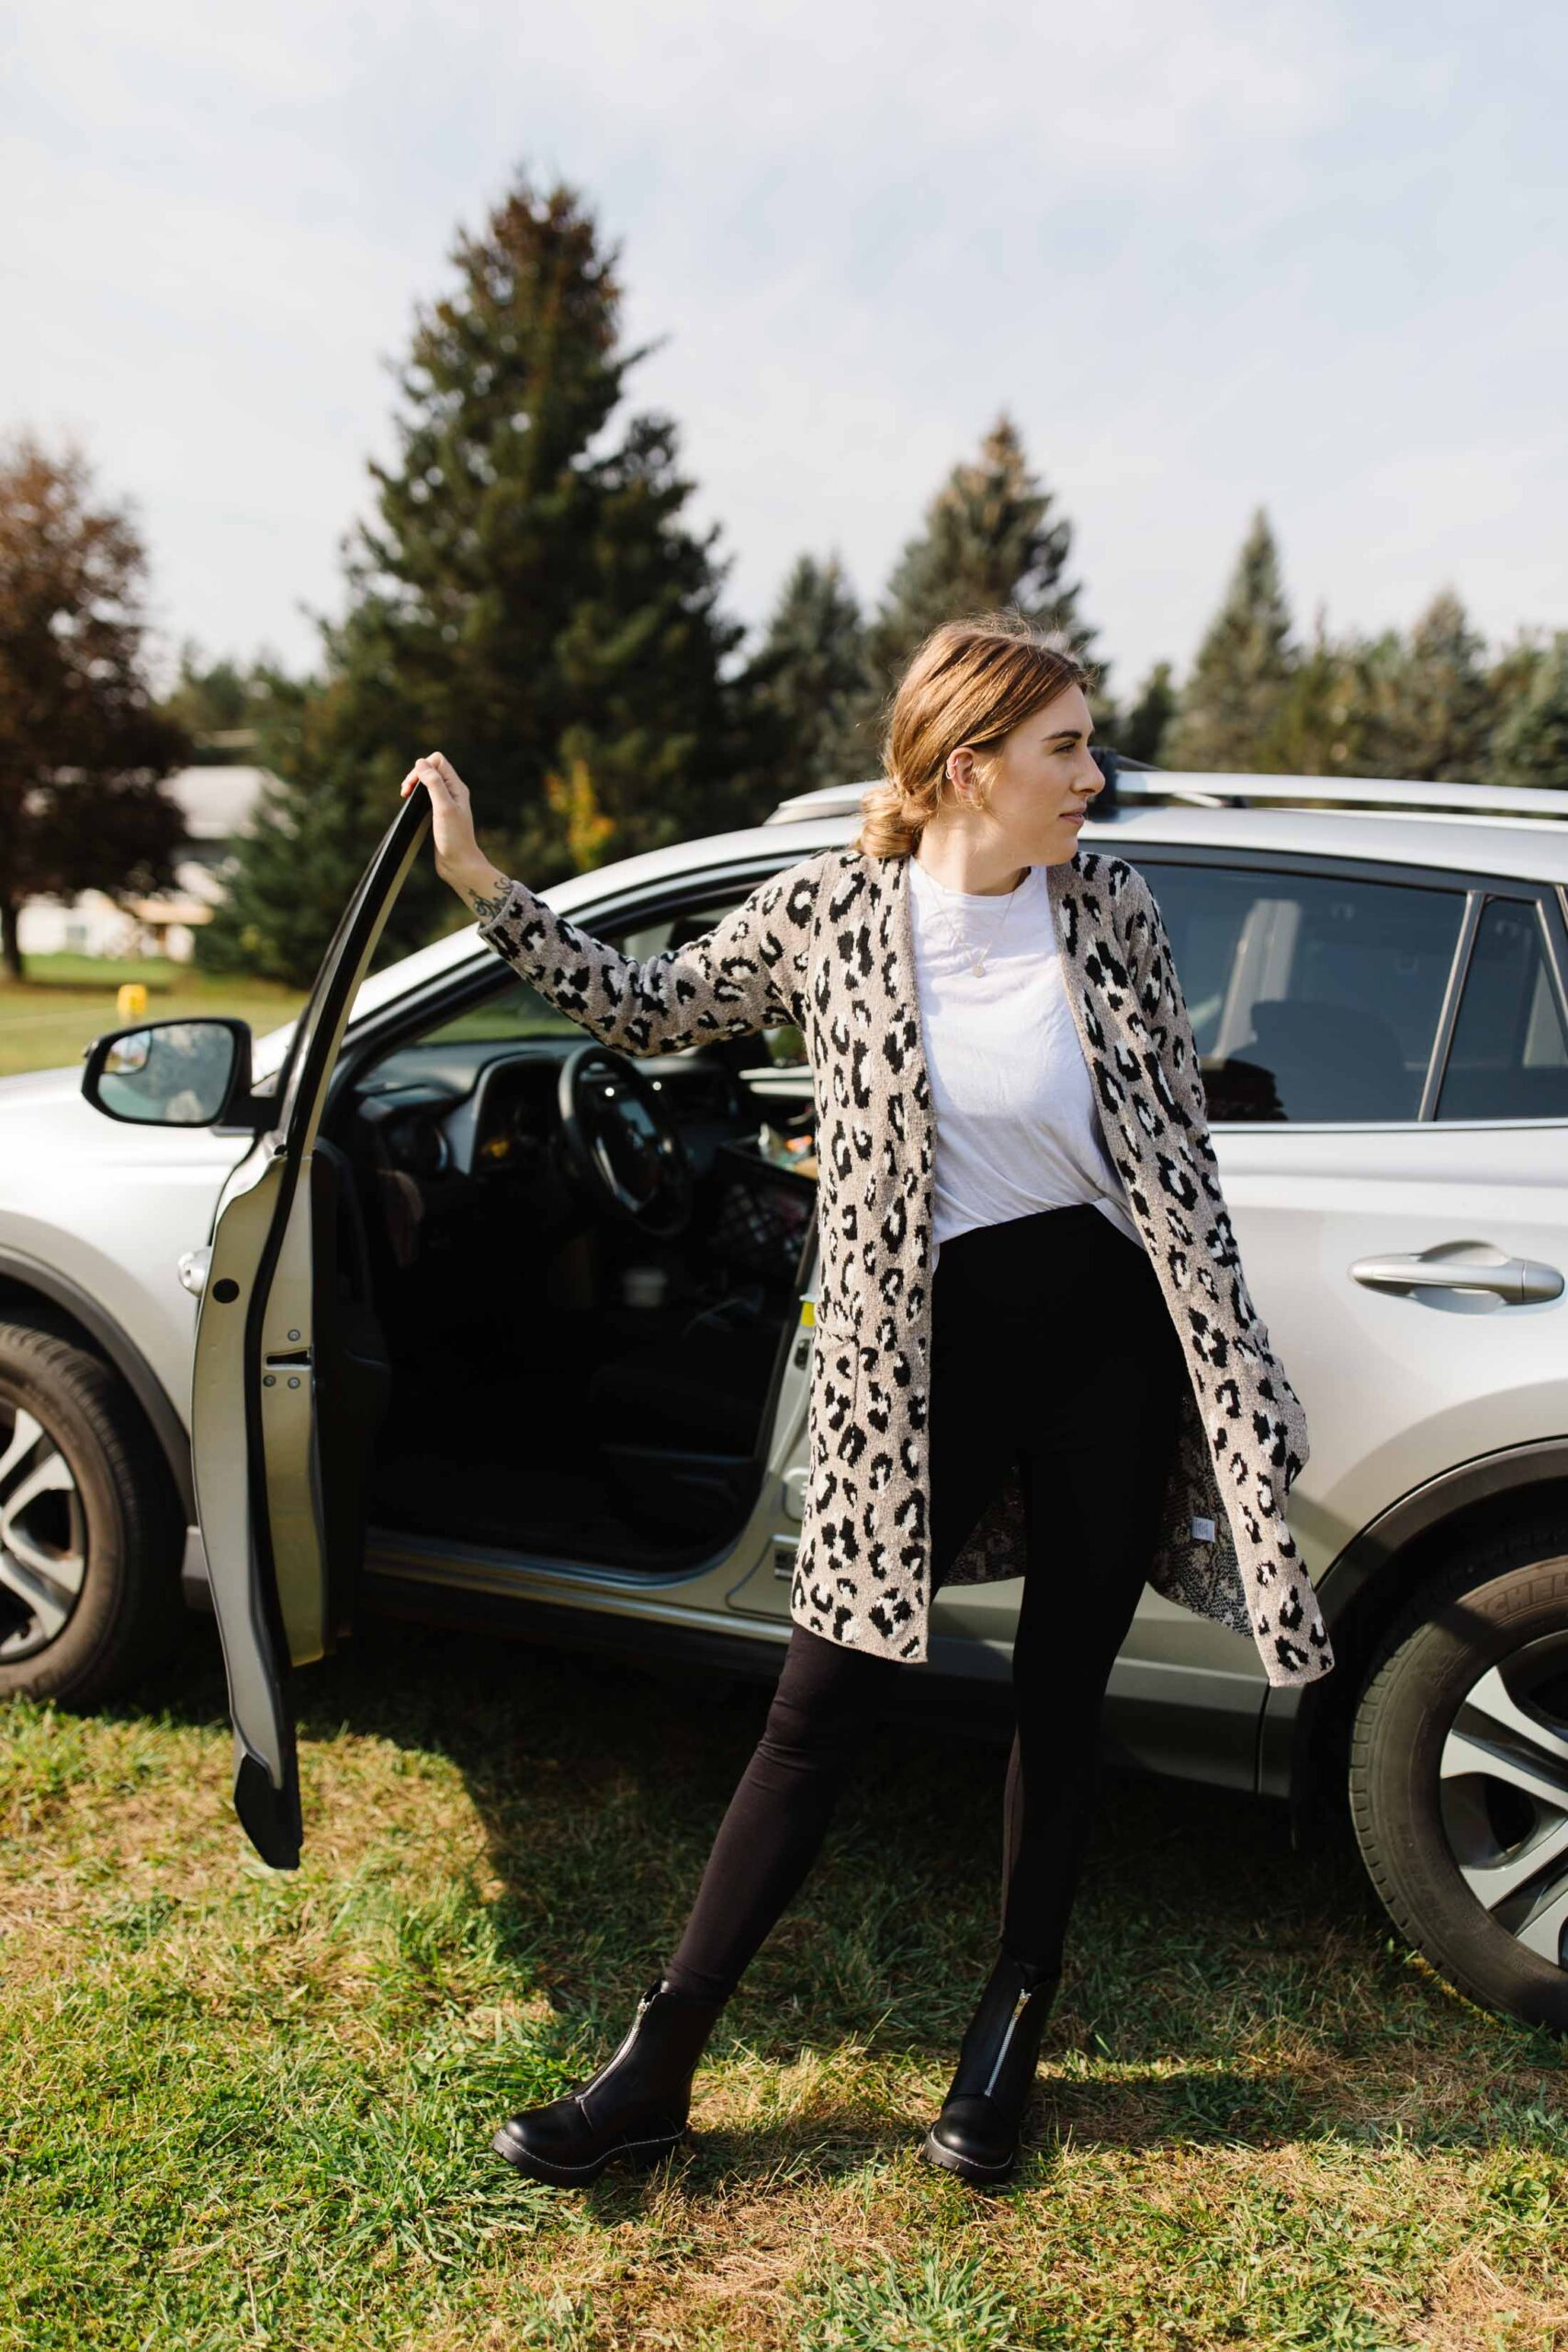 After finding the Car Coat Cardigan, everything else fell into place. I found the perfect solution for my road trip outfit -- magical leggings, versatile boots & a cool graphic tee.